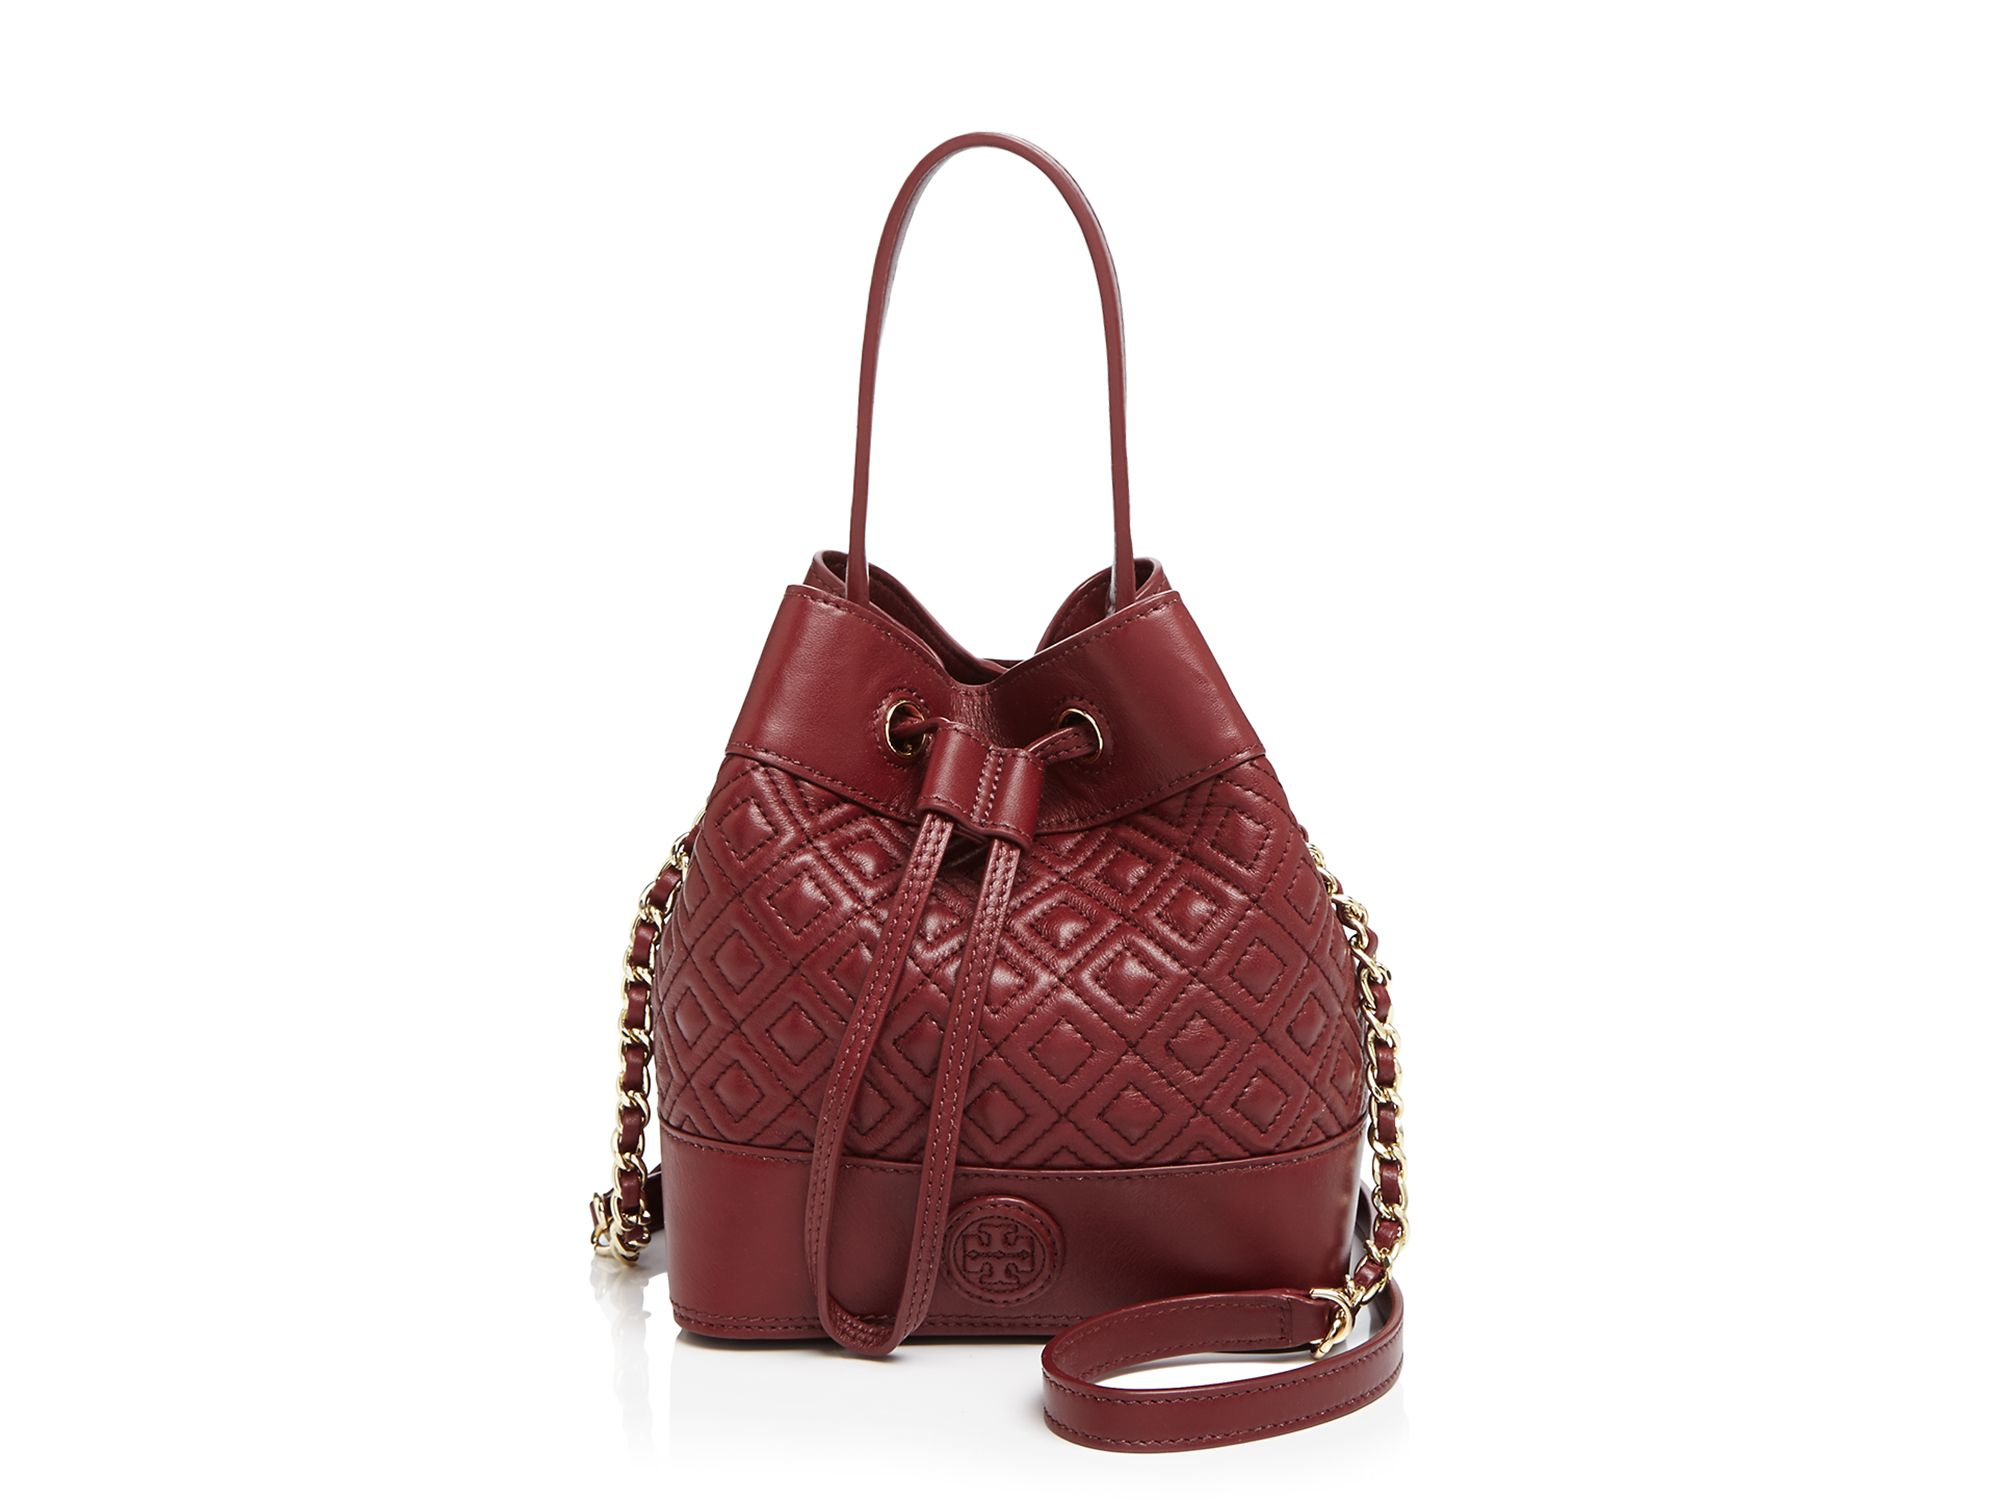 e8eda26f6c Tory Burch Marion Quilted Mini Bucket Bag - Best Quilt Grafimage.co